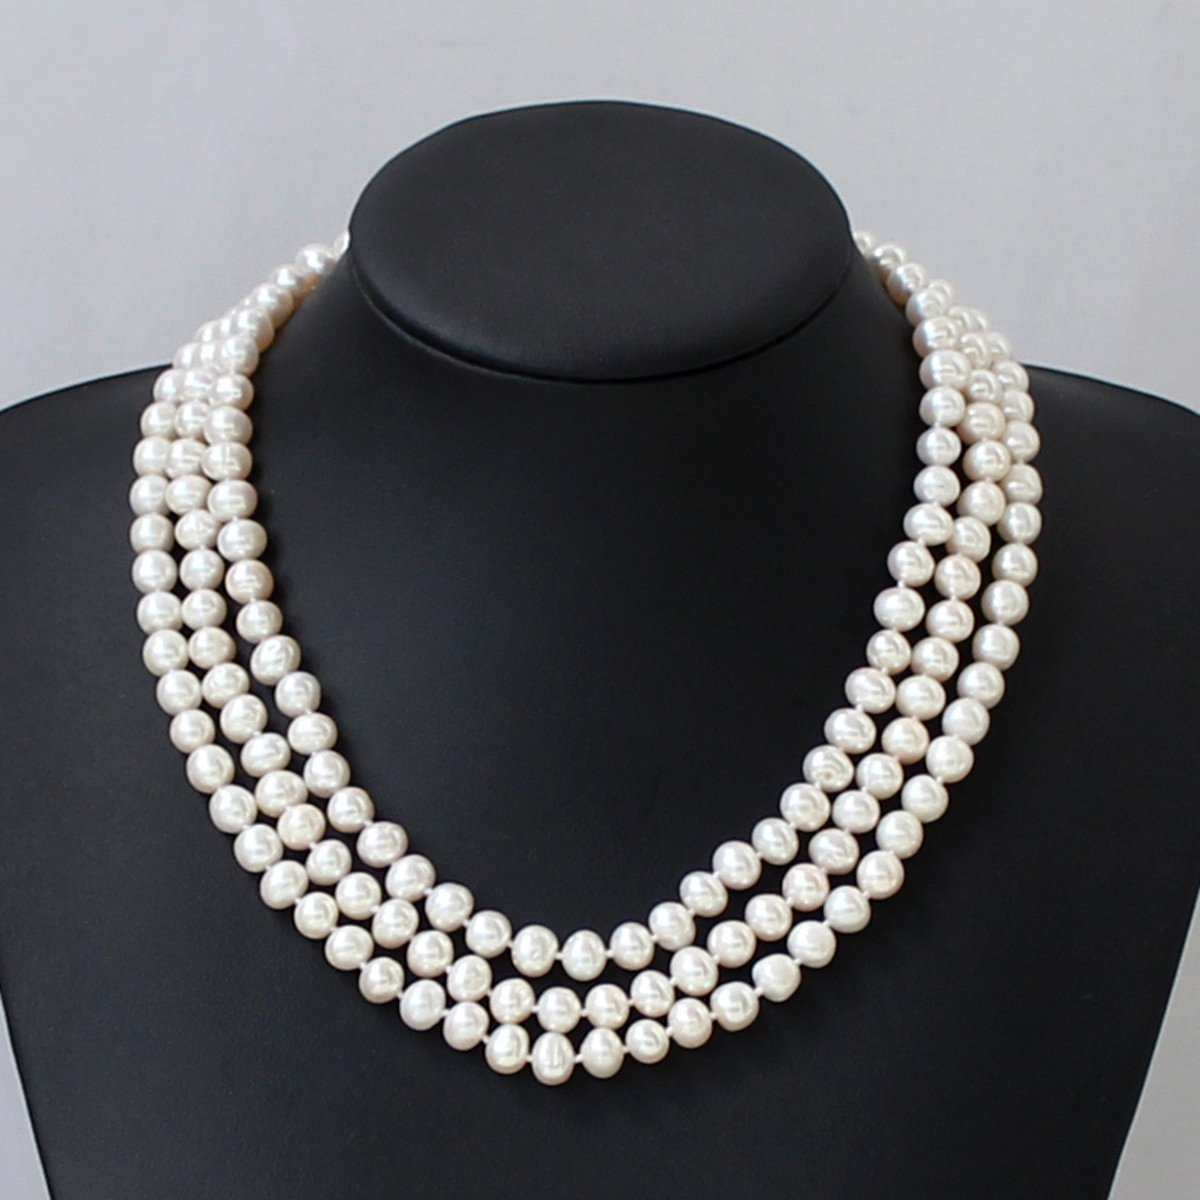 Handmade 3 Row AAA Round Freshwater Pearl Necklace Statement Necklace Wedding Necklace Mothers Gift, Bridesmaid Gifts